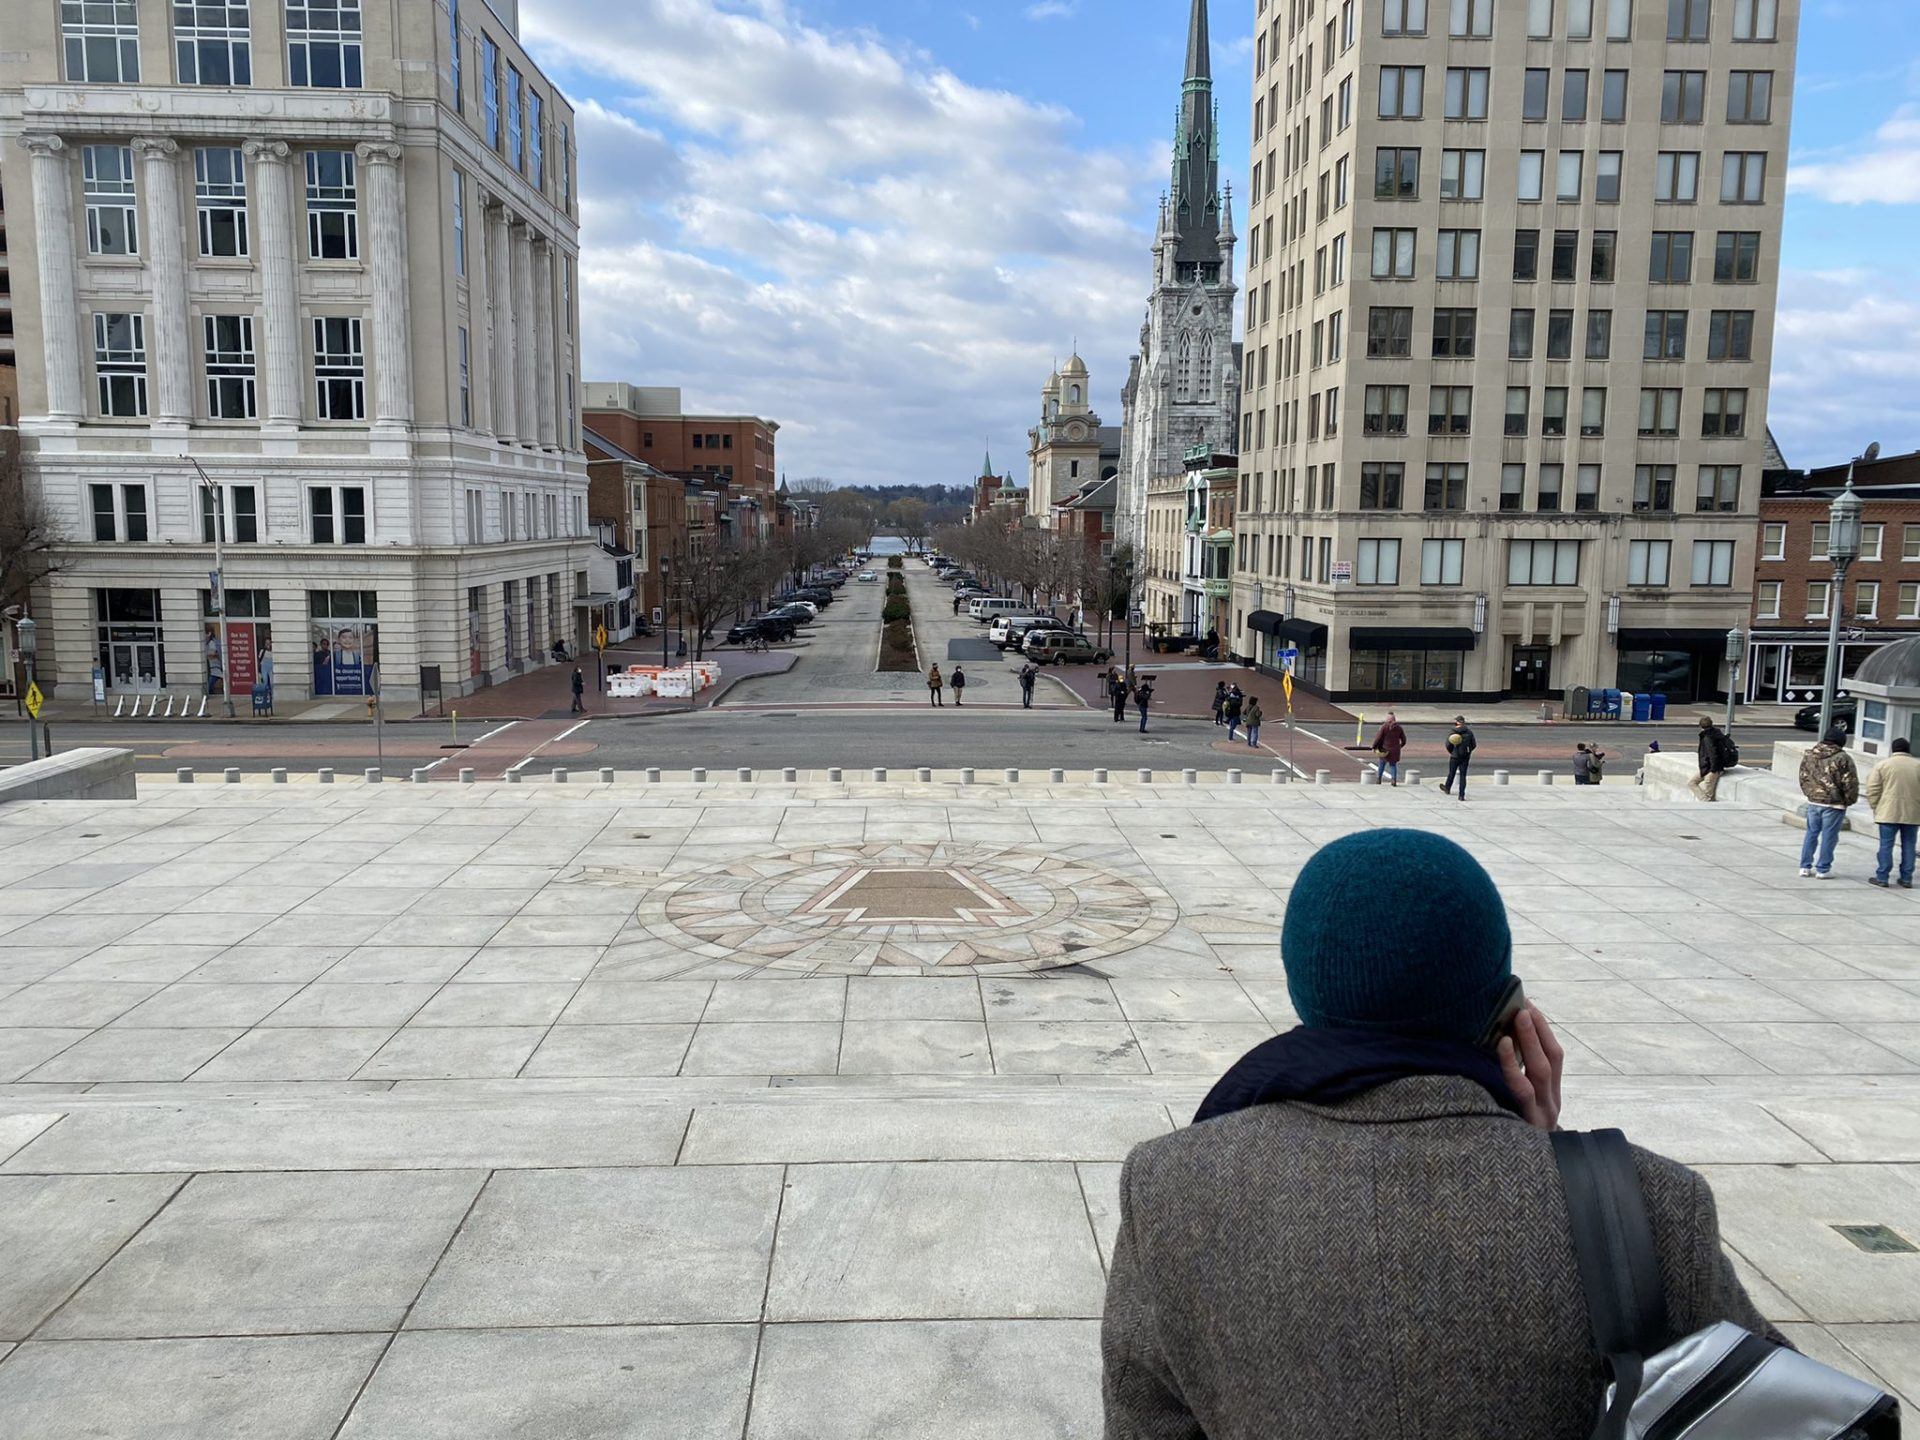 Journalists and police monitor the Pennsylvania State Capitol for possible protests. The scene was quiet as of 11 a.m. Sunday, Jan. 17, 2021.